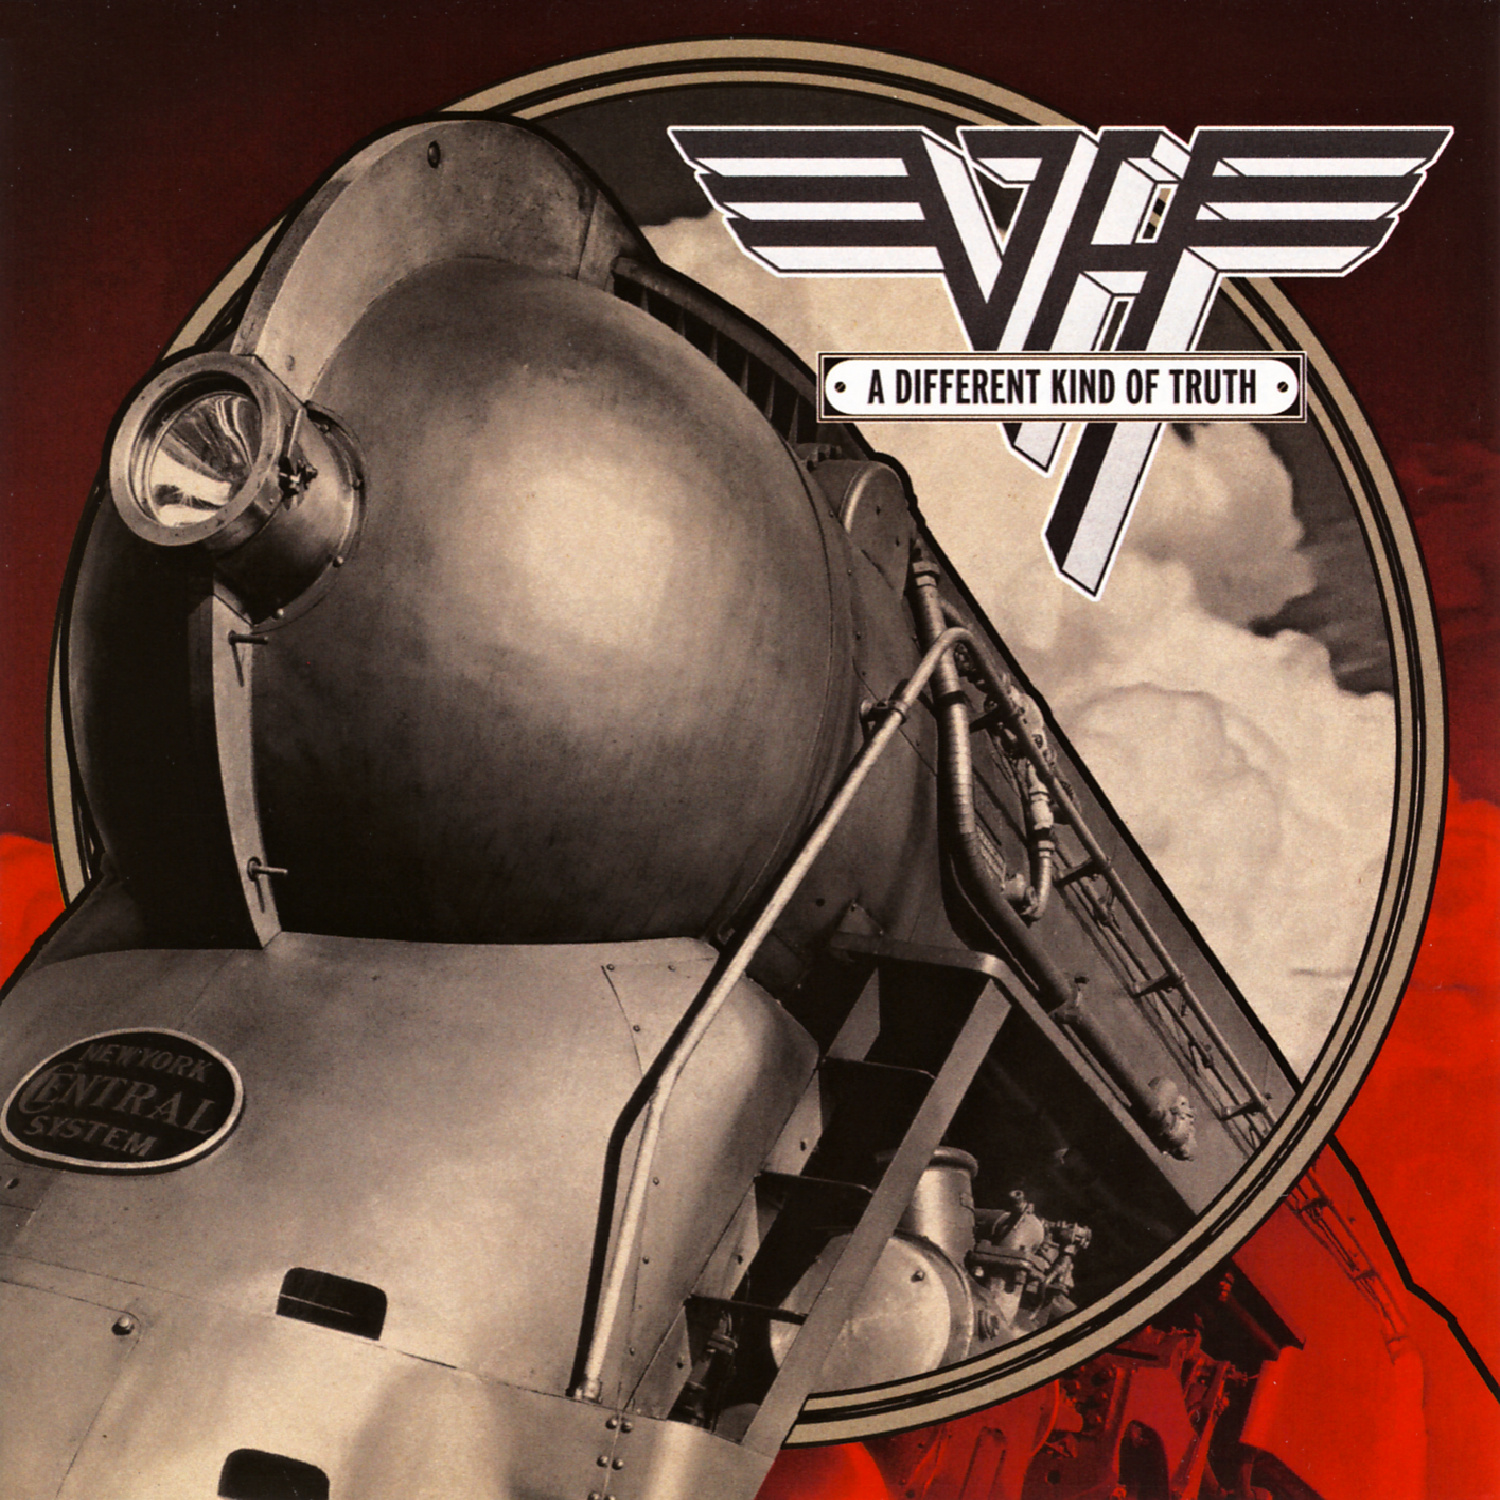 Van_Halen_-_A_Different_Kind_Of_Truth_-_Front.jpg